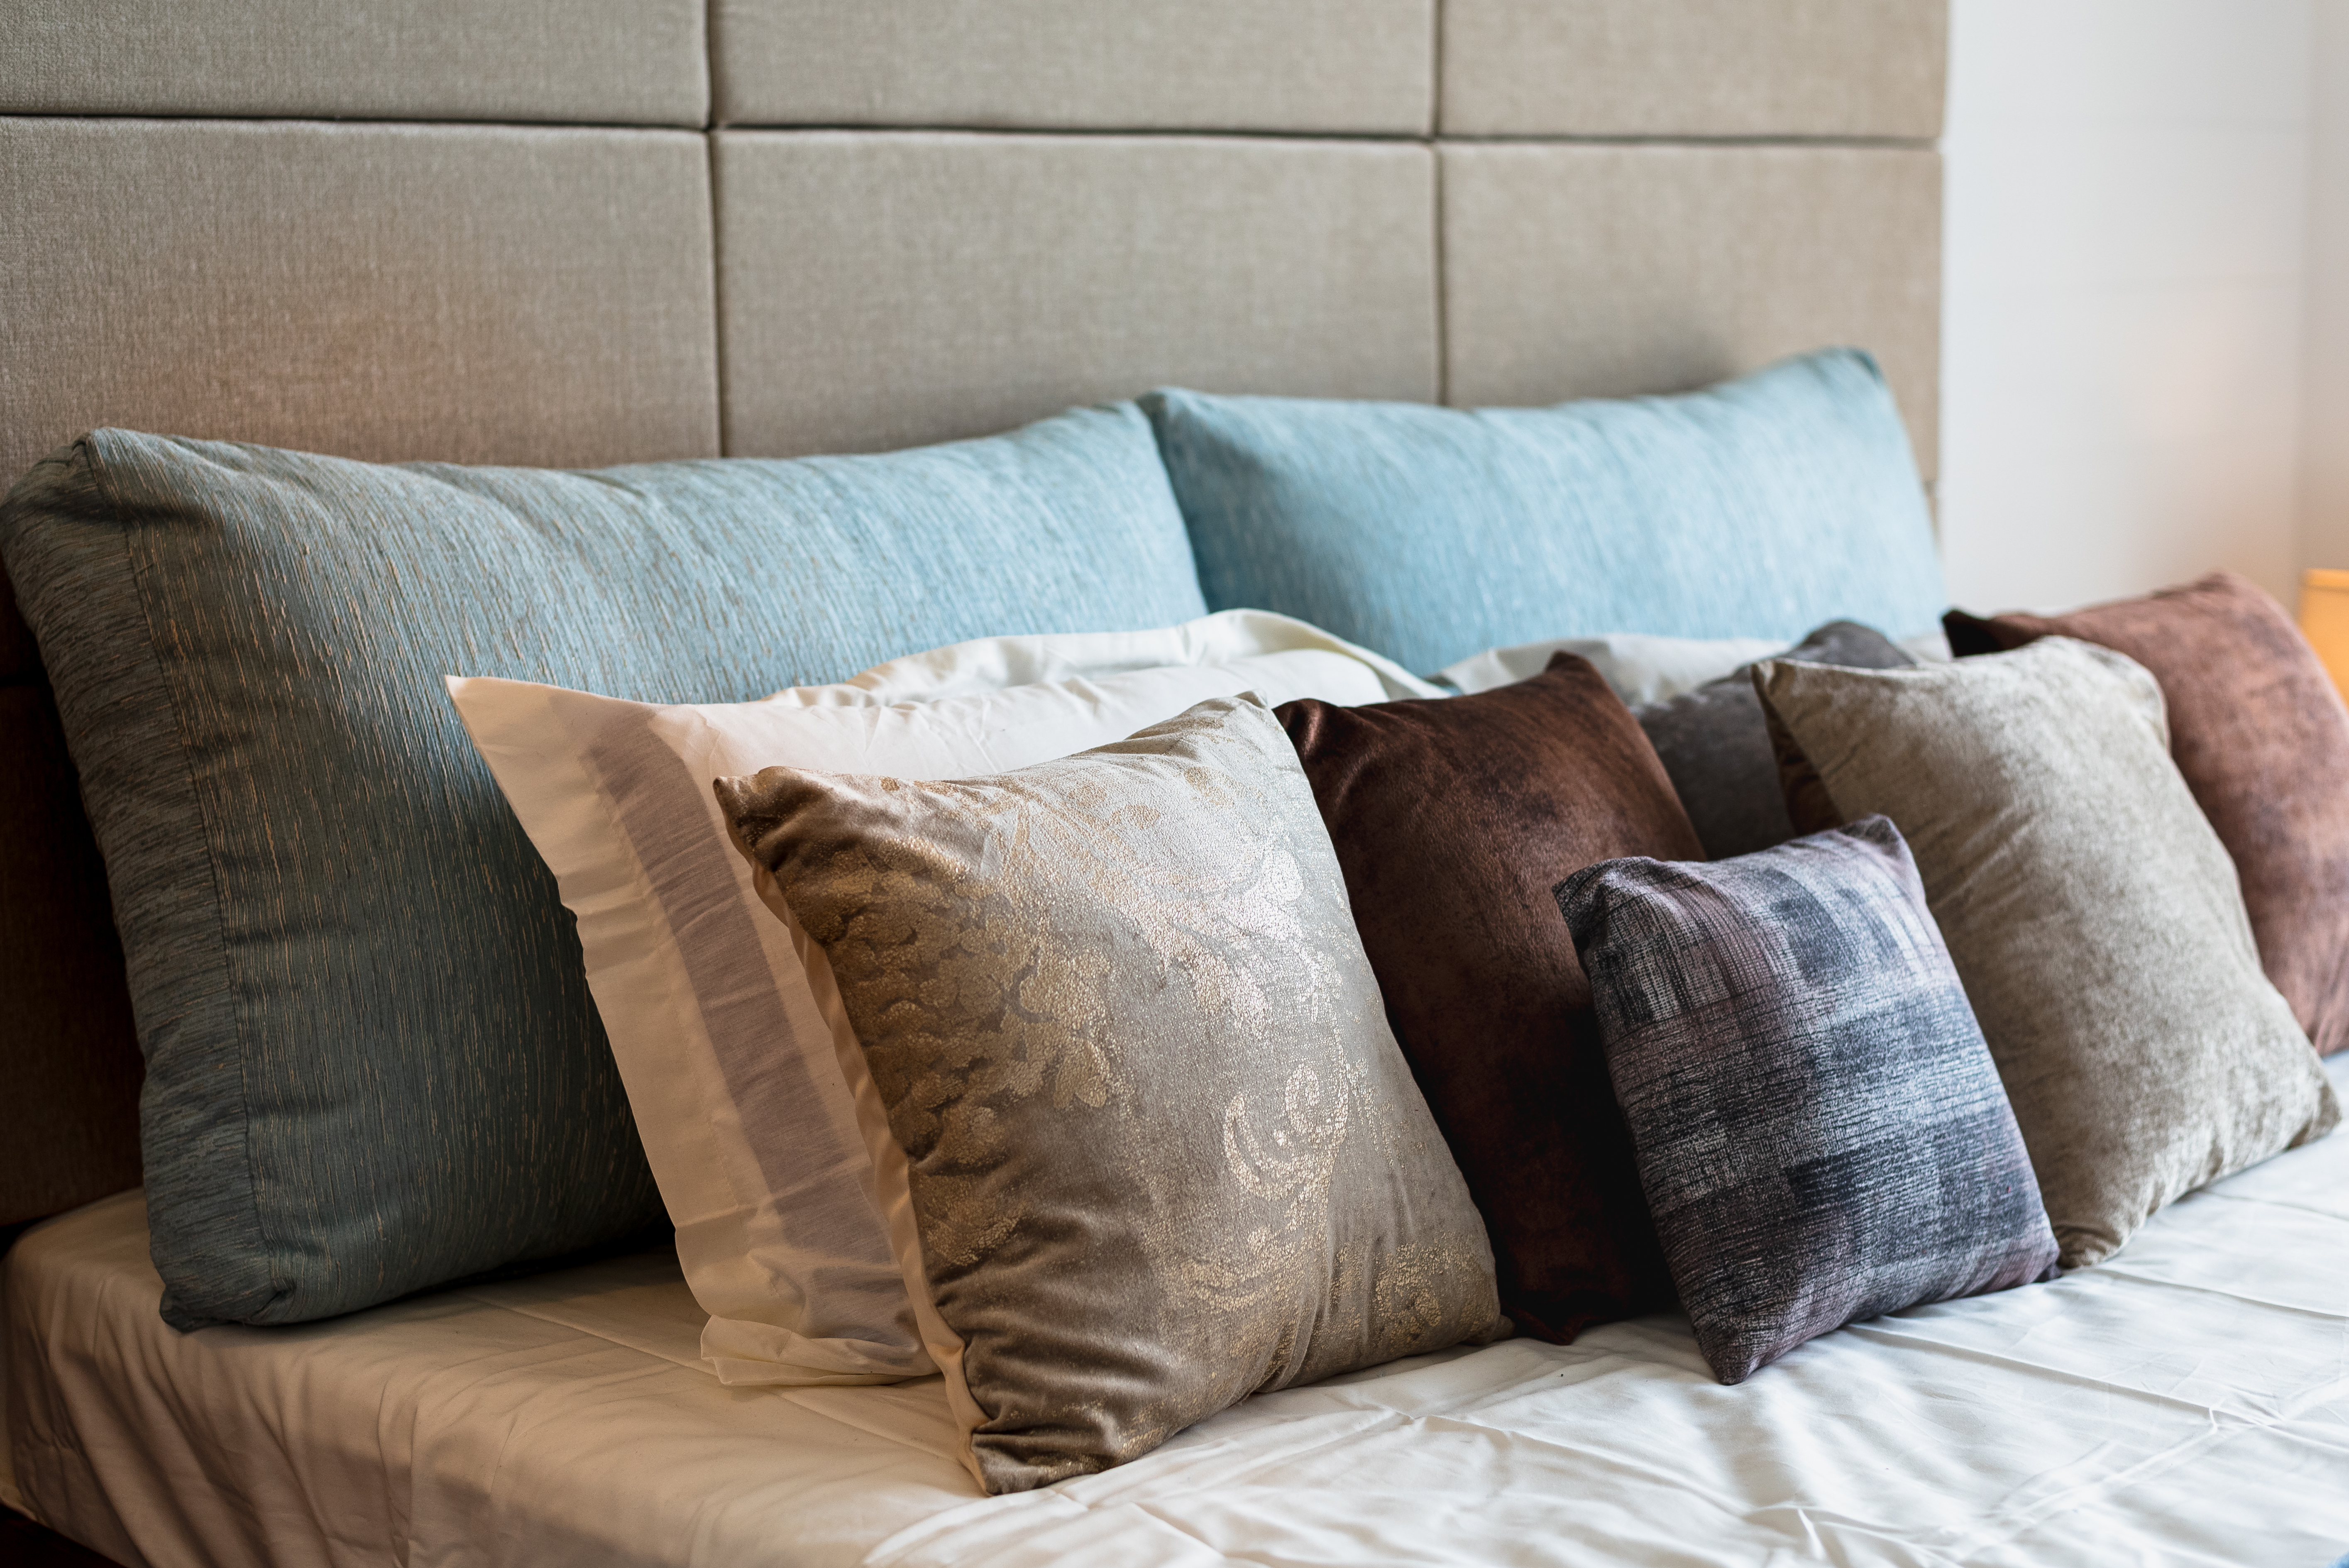 Ddecor cushions